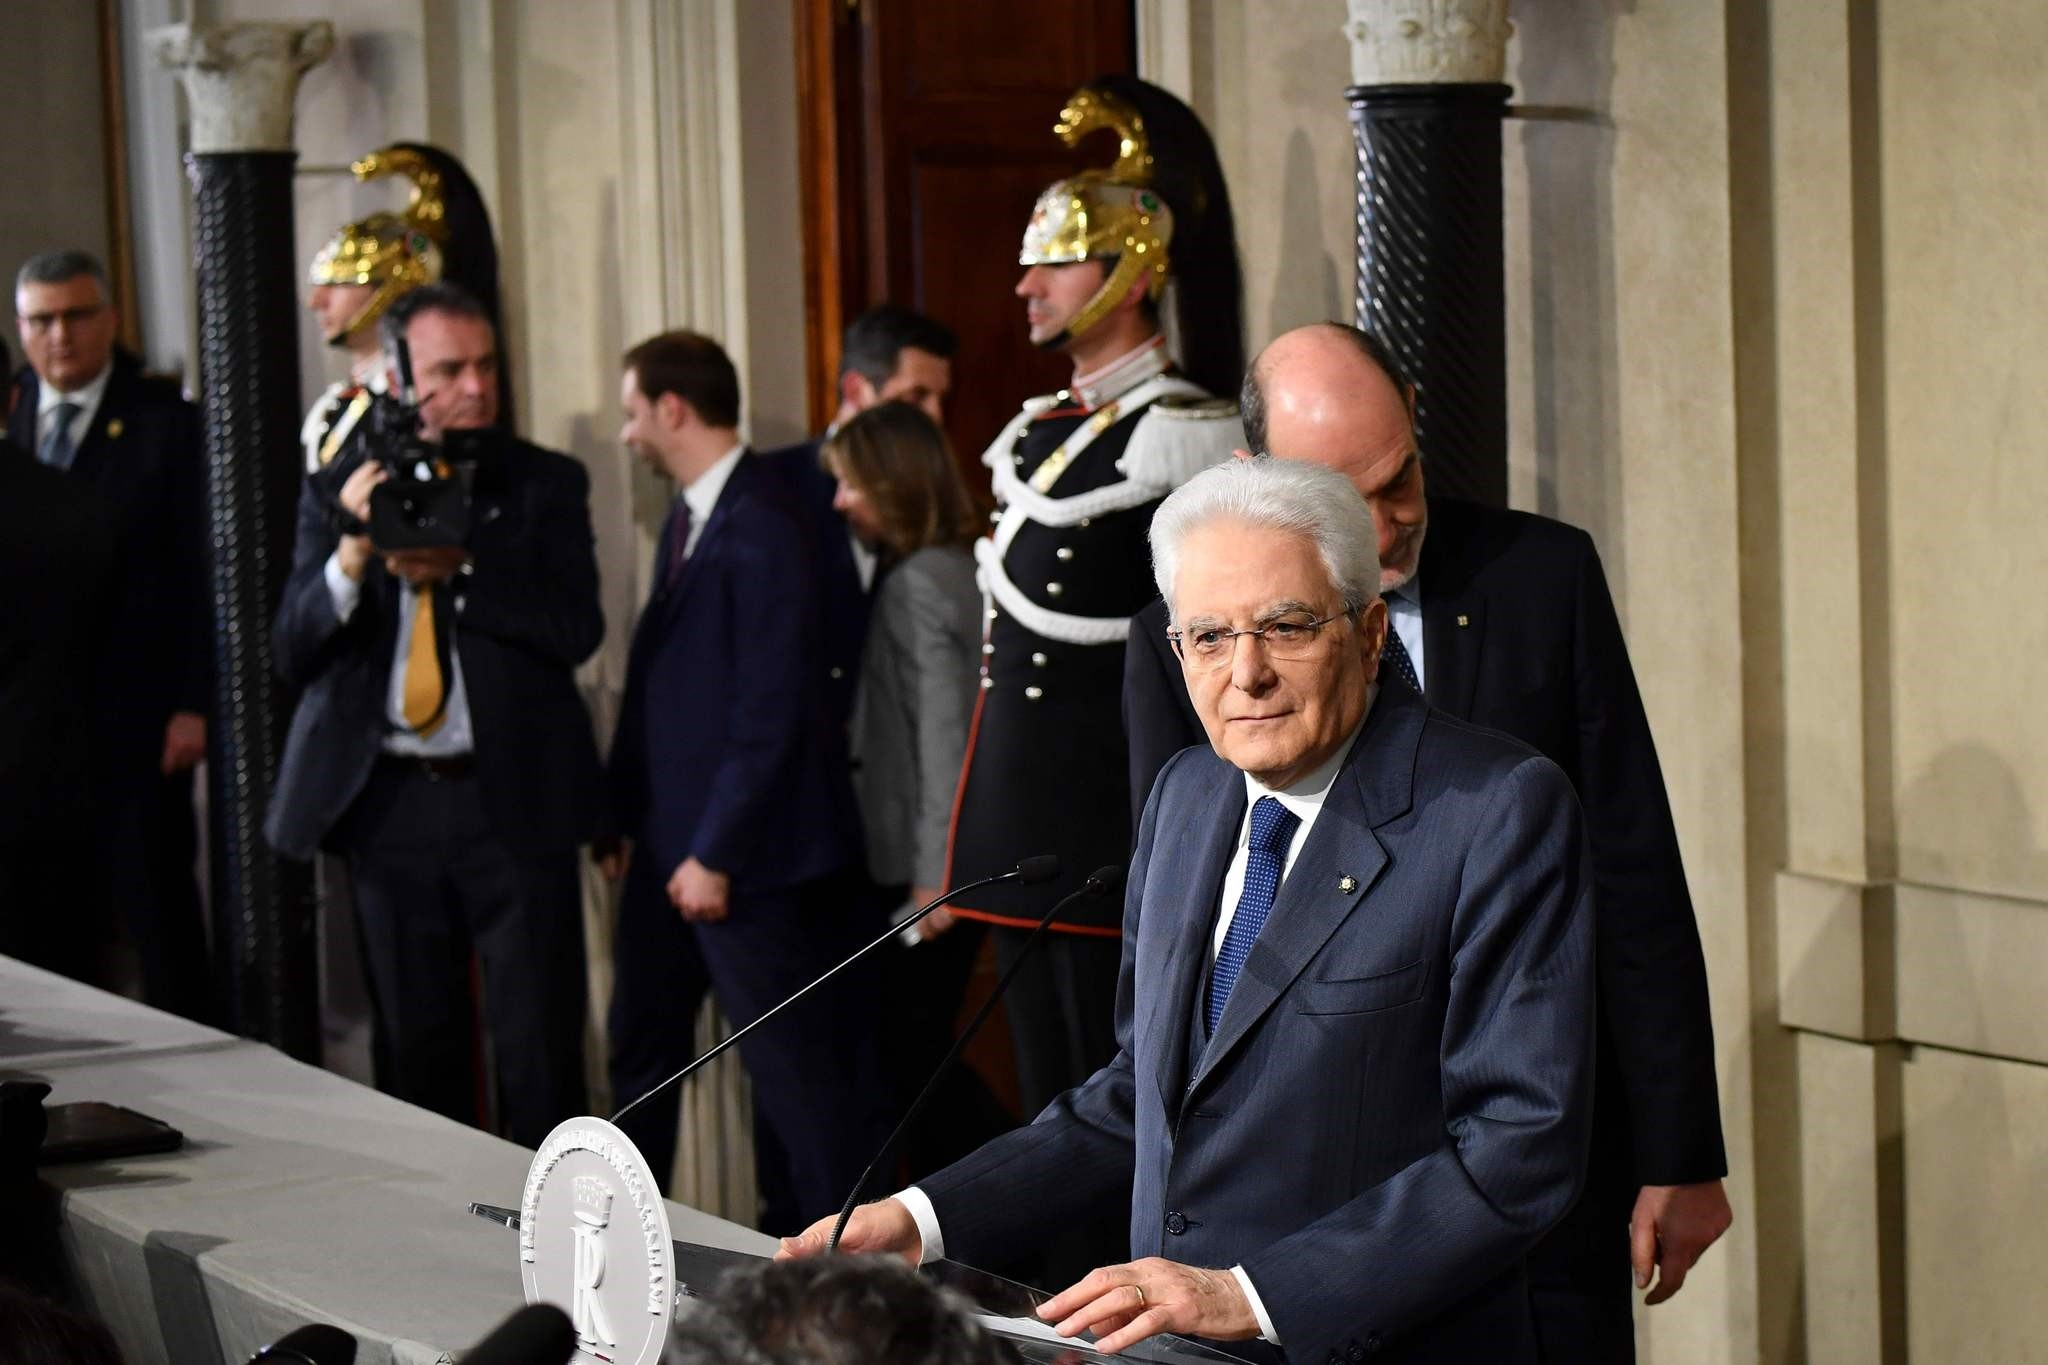 Italian President Sergio Mattarella addresses journalists on the second day of consultations of political parties, on April 5, 2018 at the Quirinale palace in Rome. Mattarella said no government accord was found and will lead new talks next week. (AF